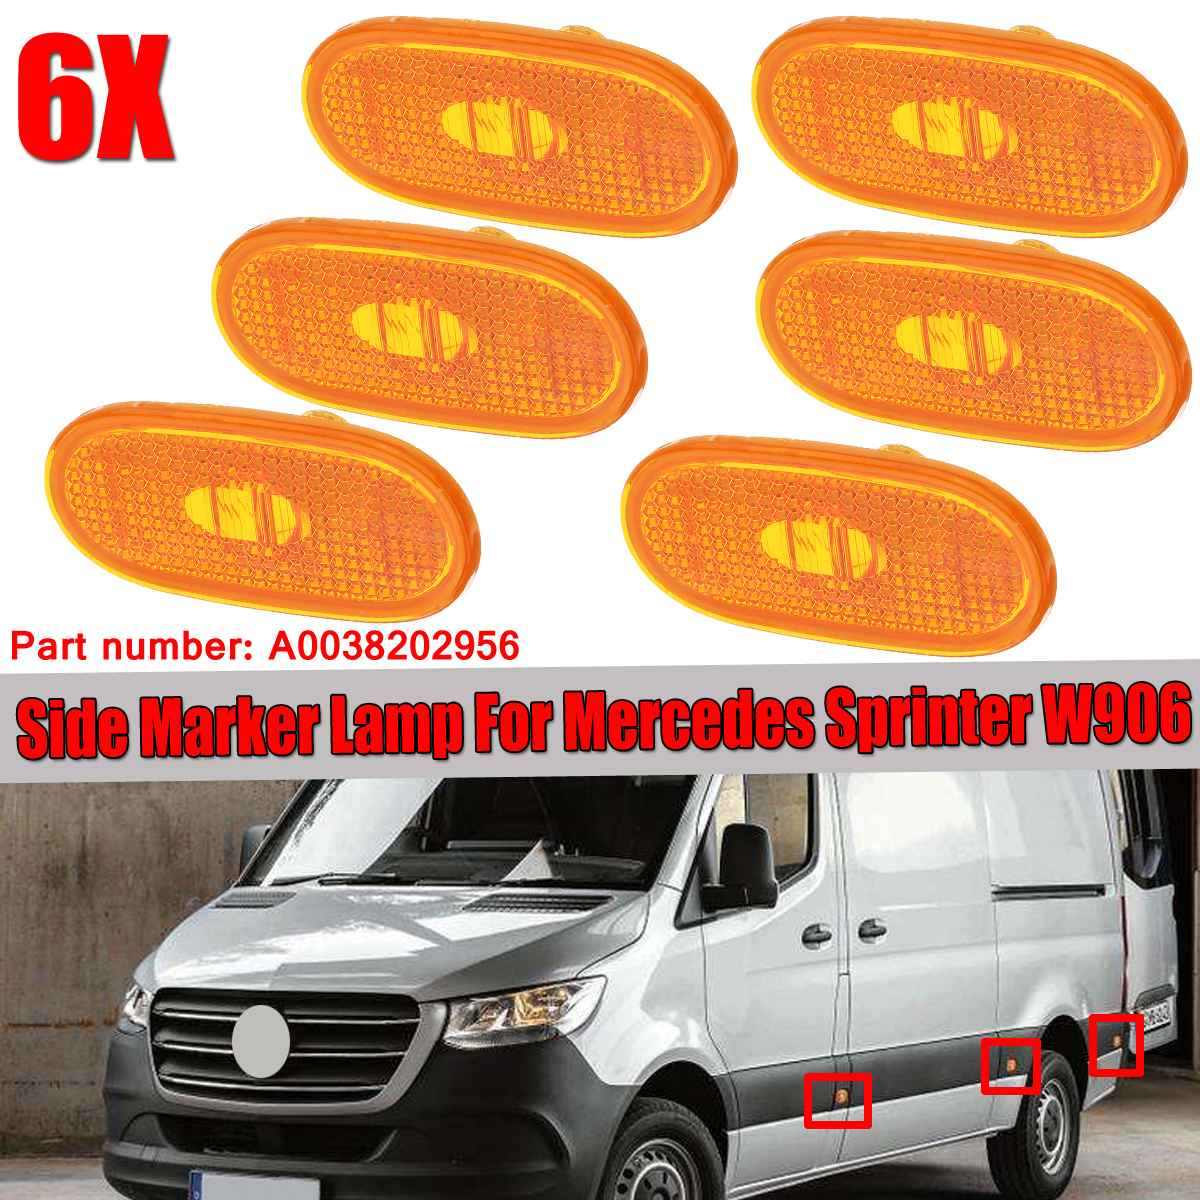 Mercedes Sprinter Front Bumper With Step New Facelift Shape 2014 Onwards W906